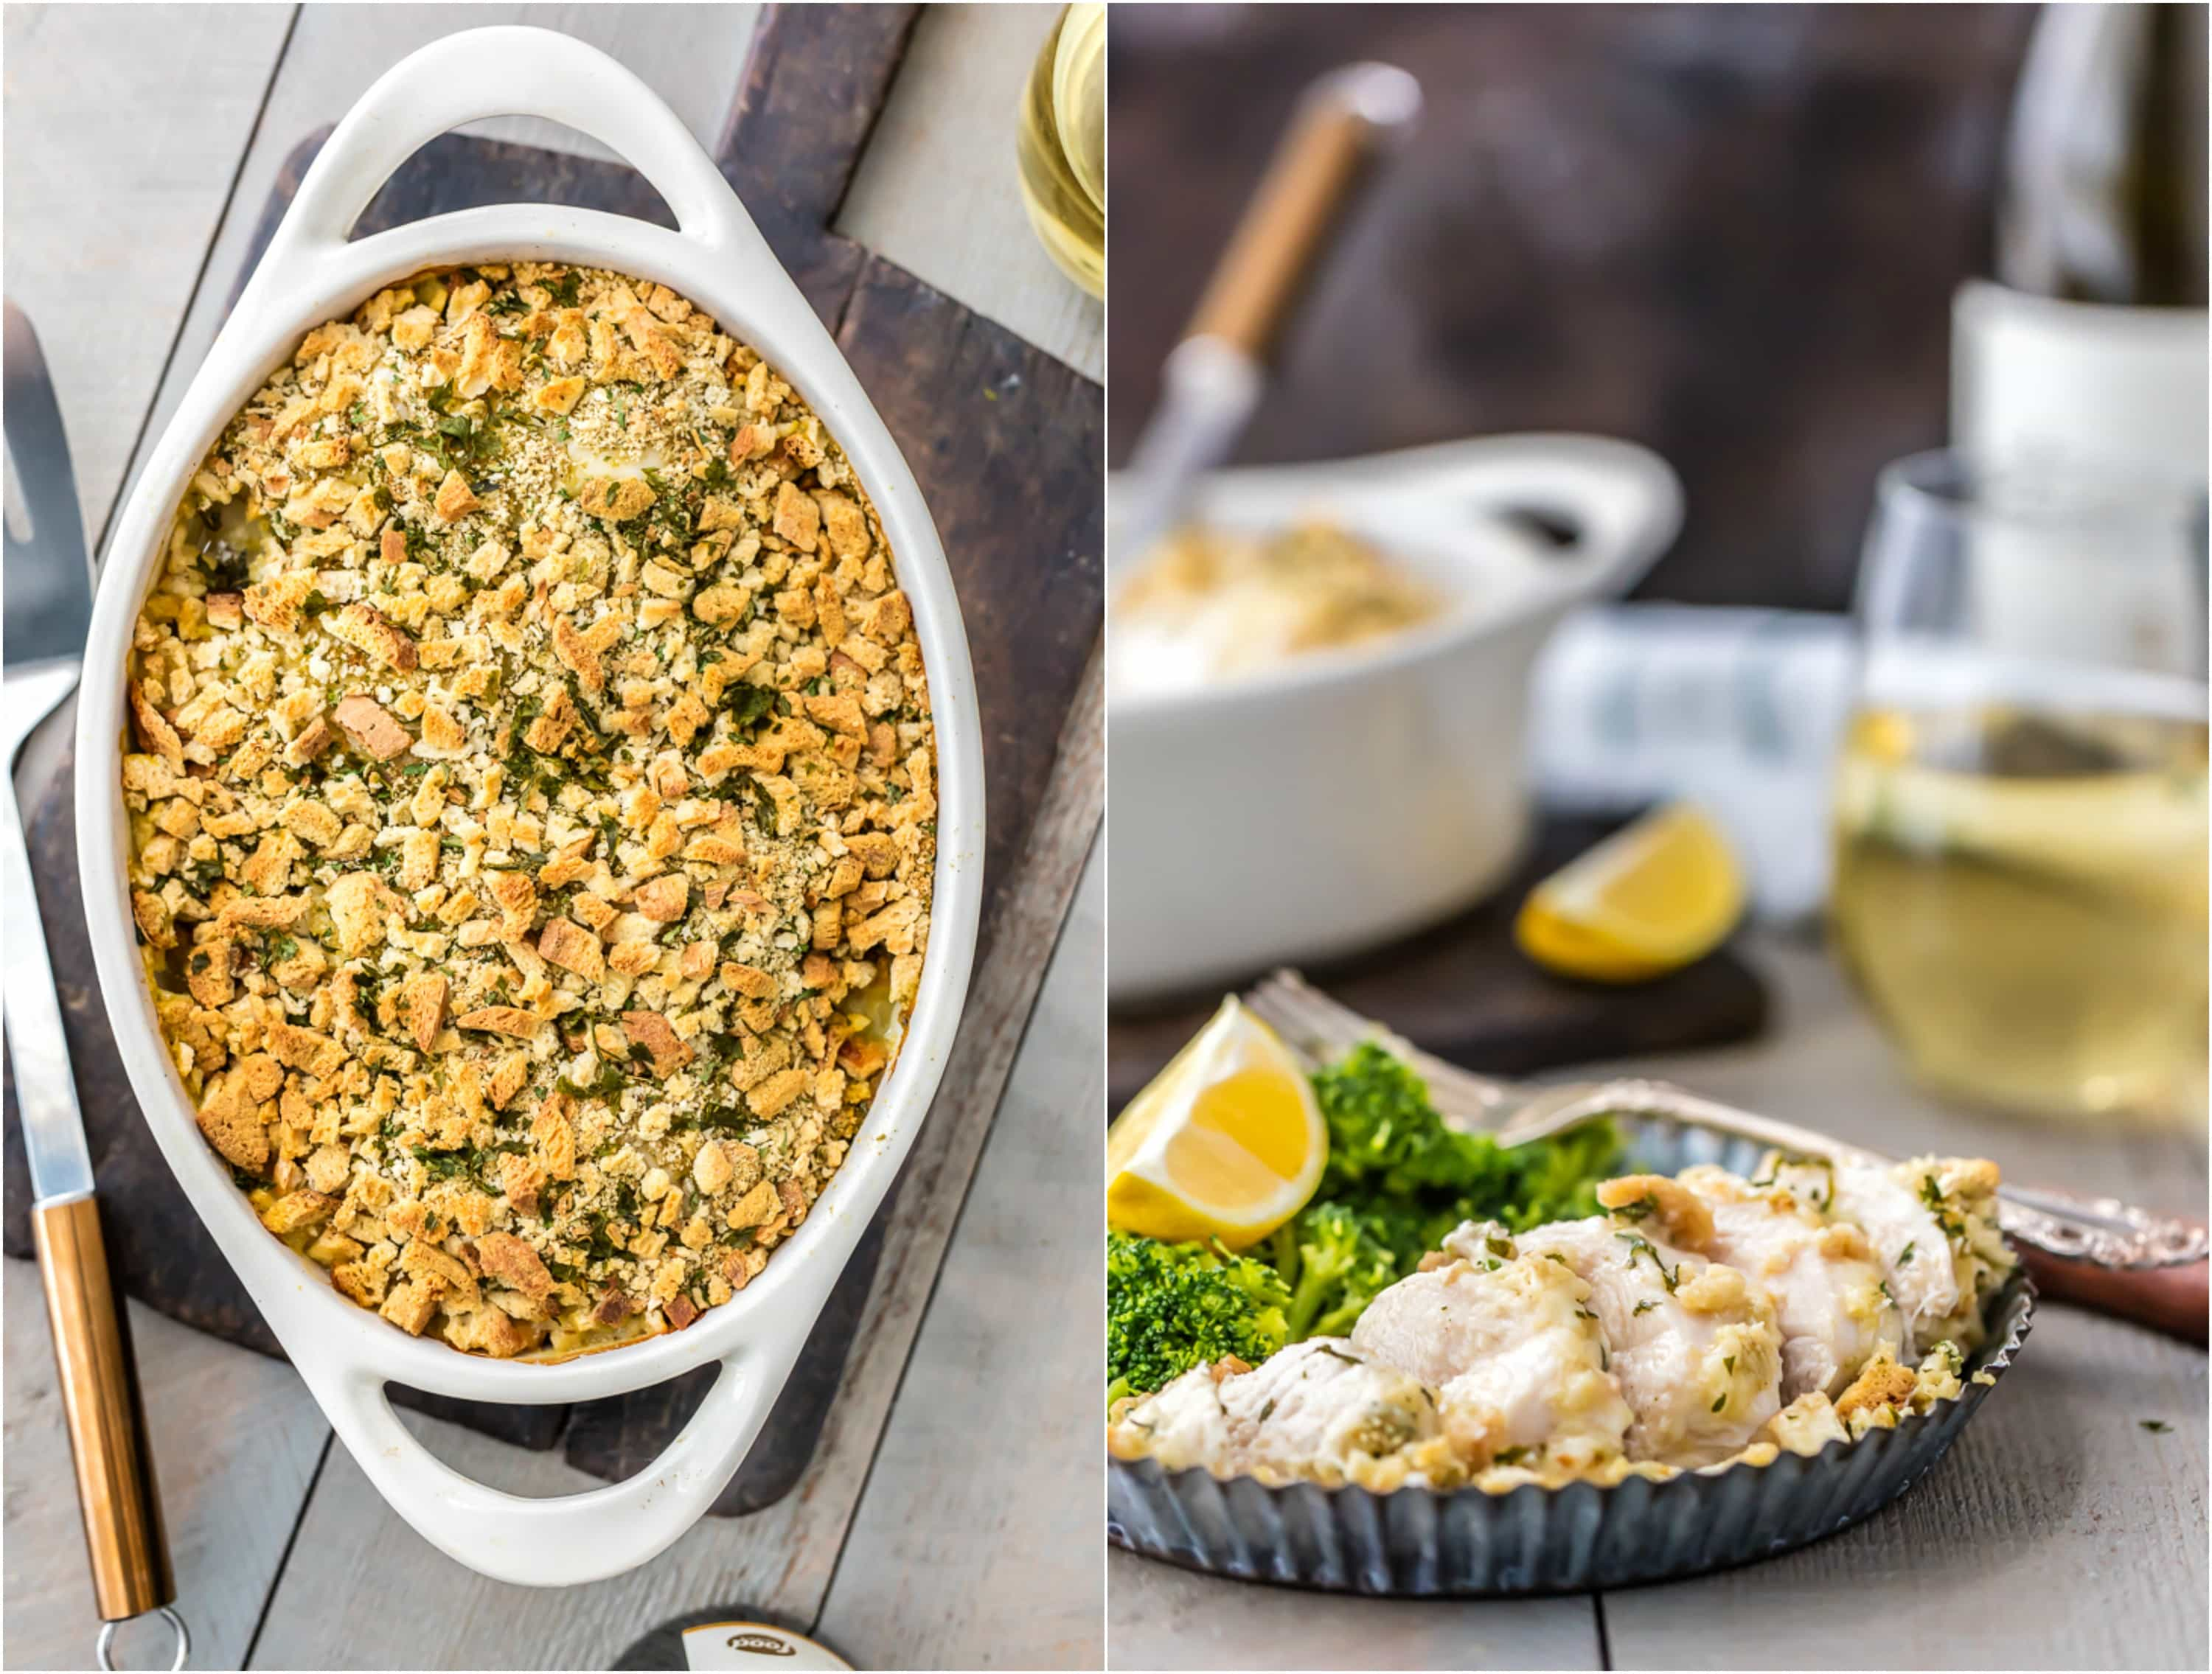 This Creamy Swiss Chicken Bake only has 5 Ingredients and virtually zero cleanup! Such an easy recipe for any occasion. GREAT FOR LEFTOVERS TOO!